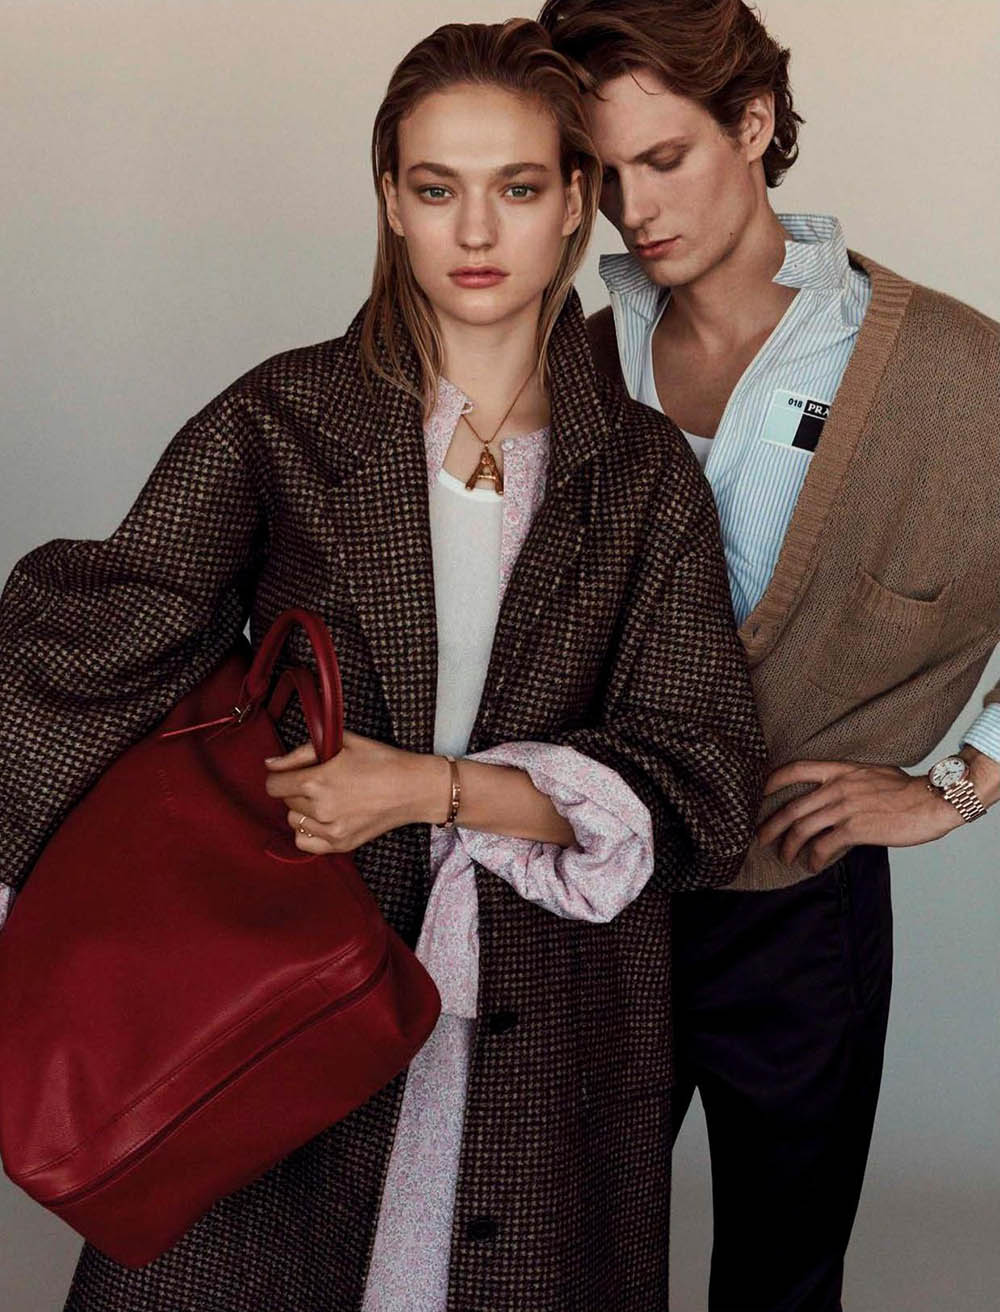 Sophia Ahrens and Felix Gesnouin by Alvaro Beamud for Vogue Spain February 2018